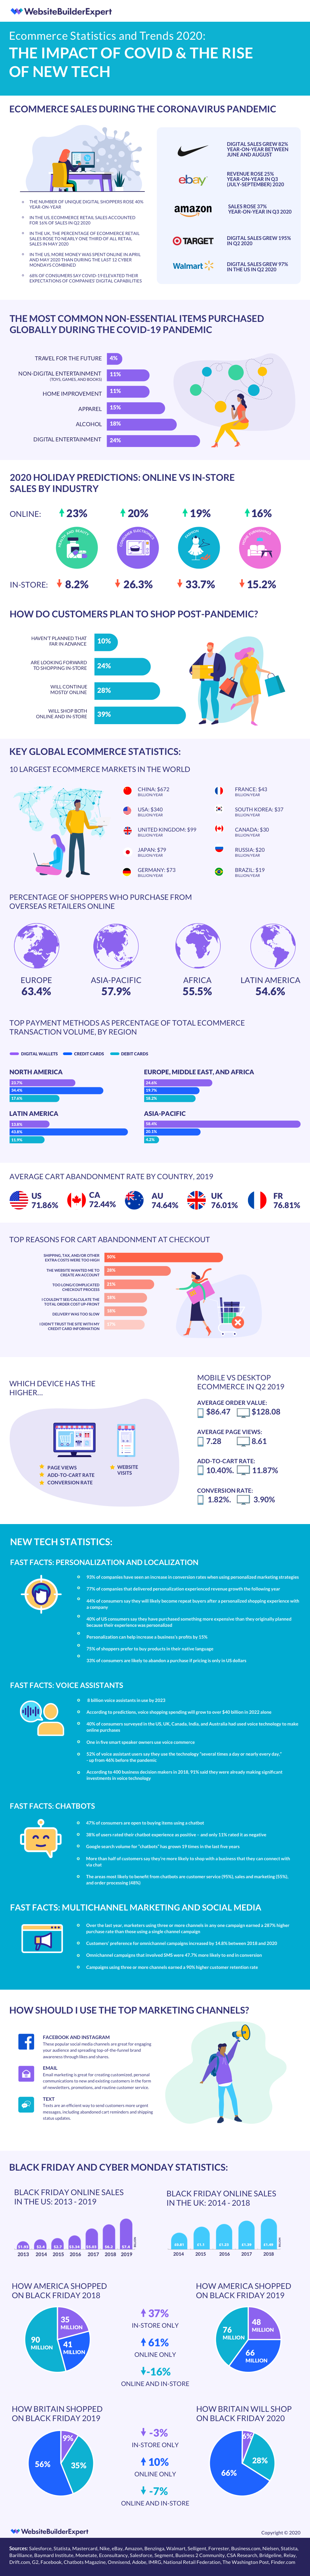 Ecommerce stats and trends 2020.